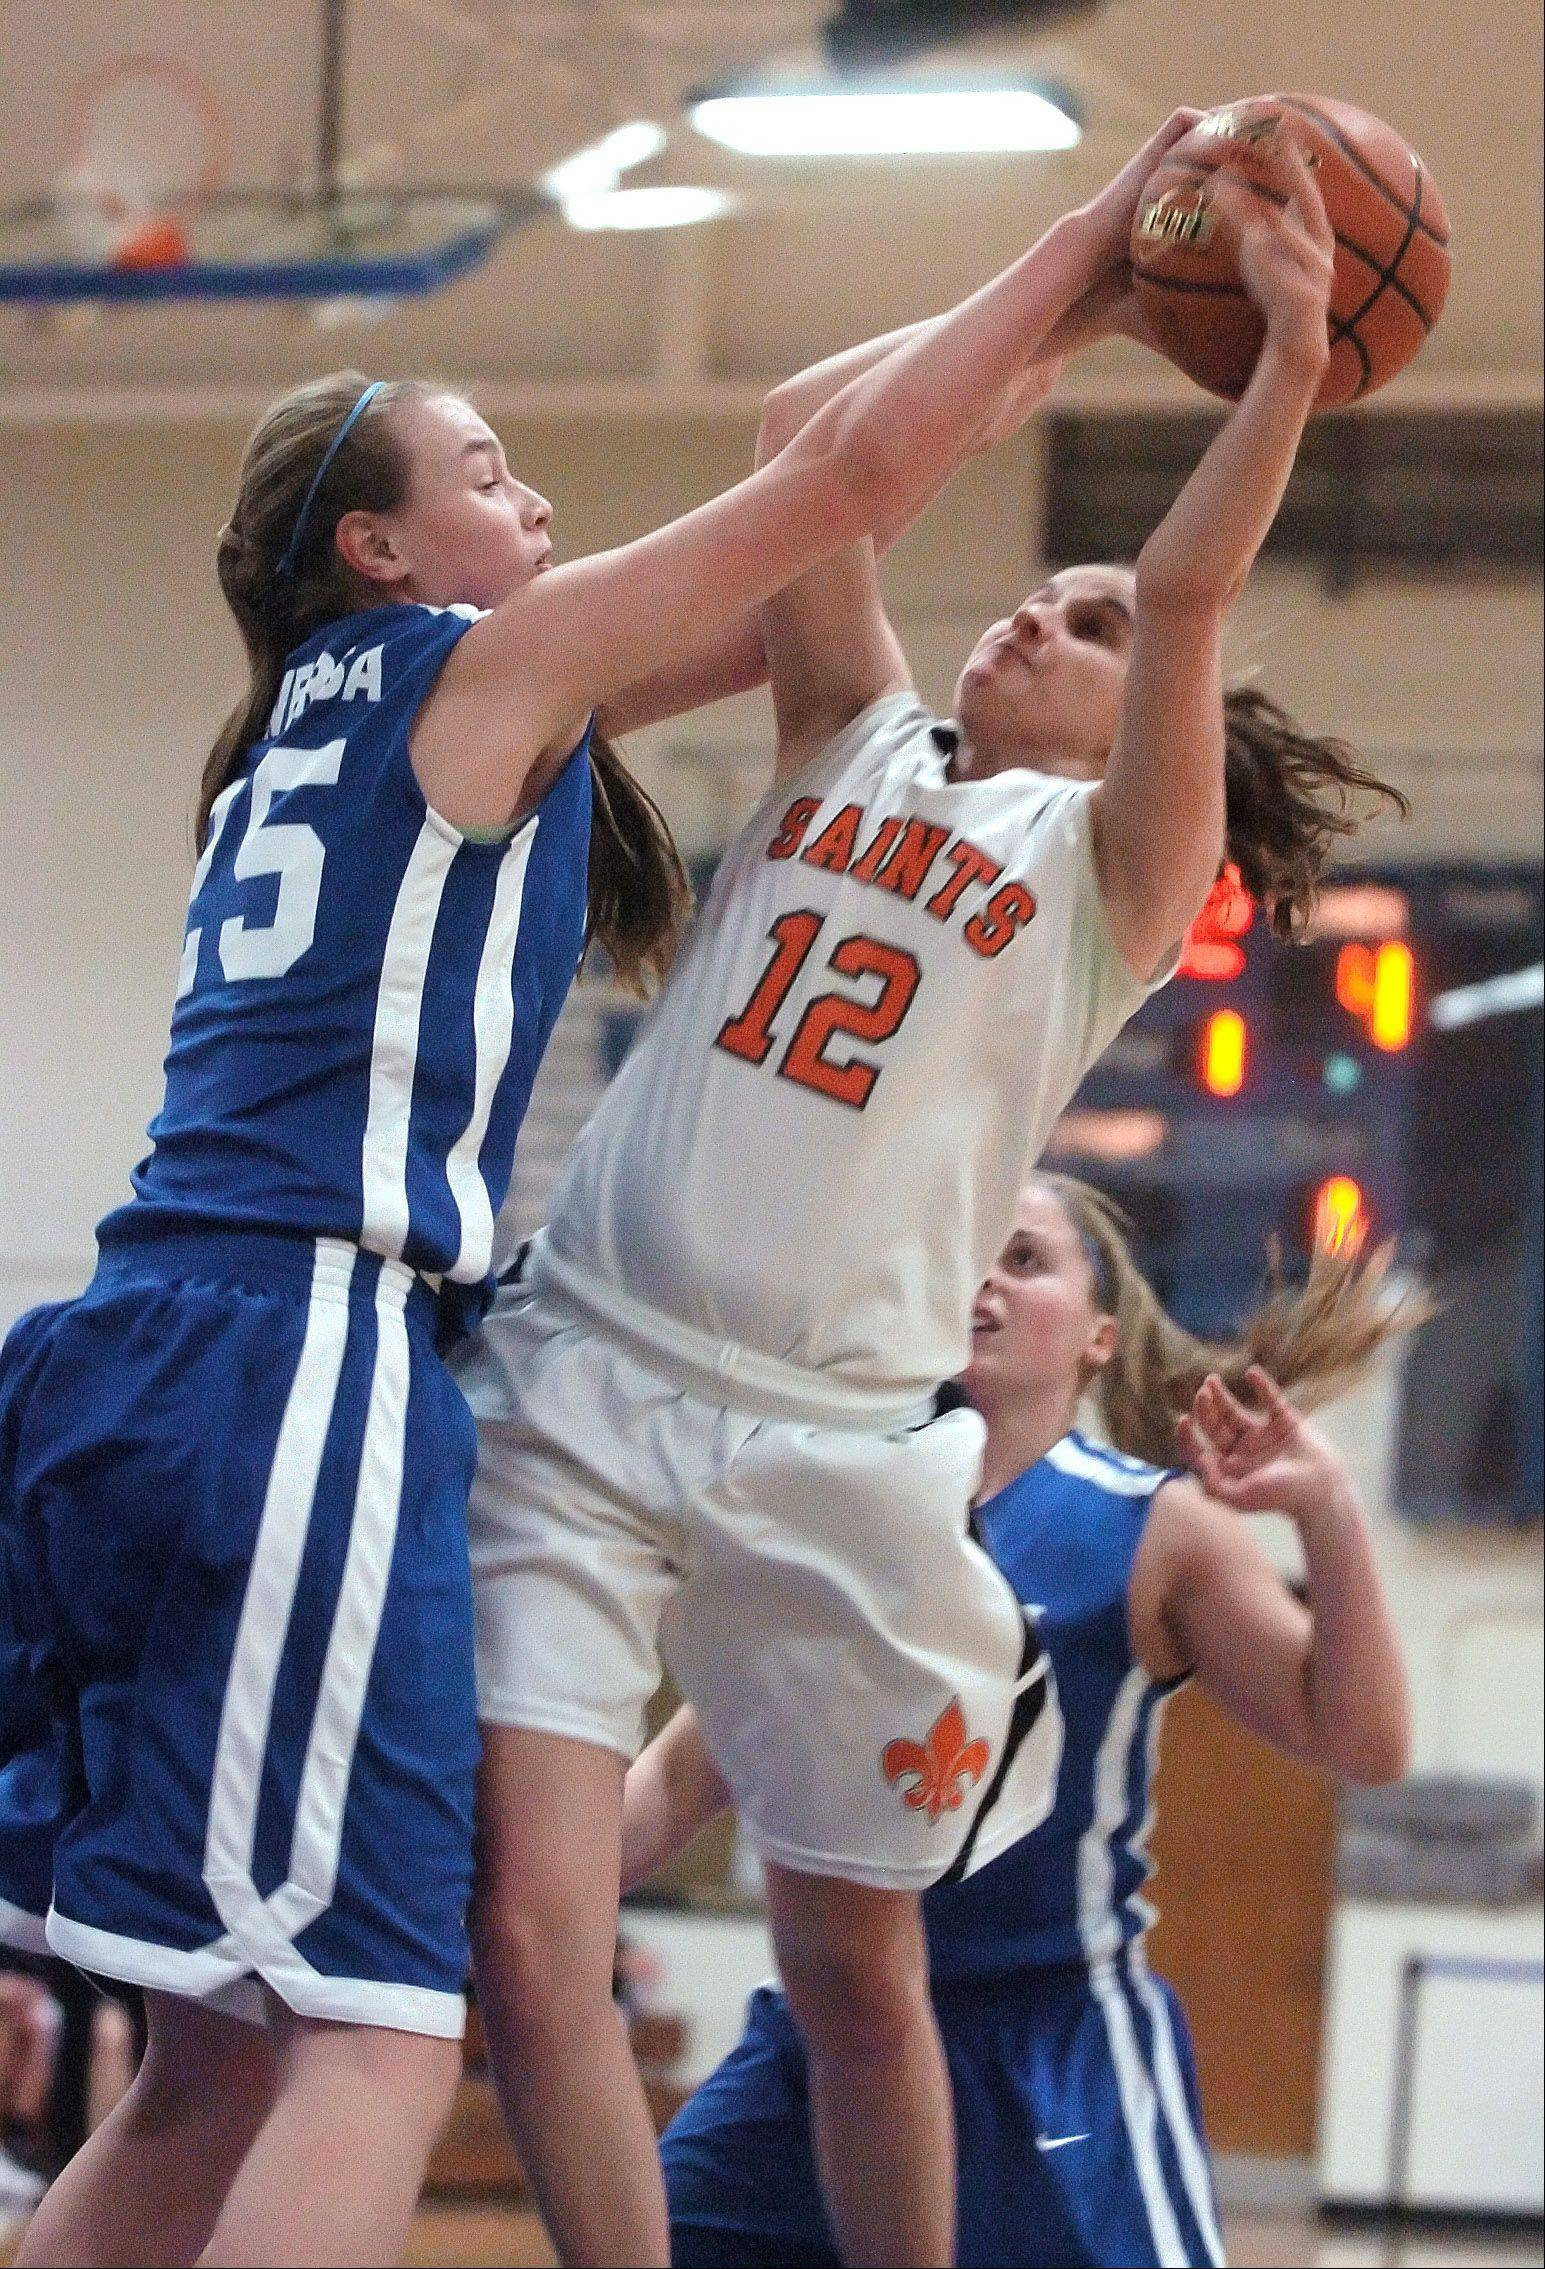 Wheaton North's Annie Carlisle blocks a shot by St. Charles East's Paige Jordan during Monday's Bill Neibch Holiday girls basketball game at Wheaton North High School.